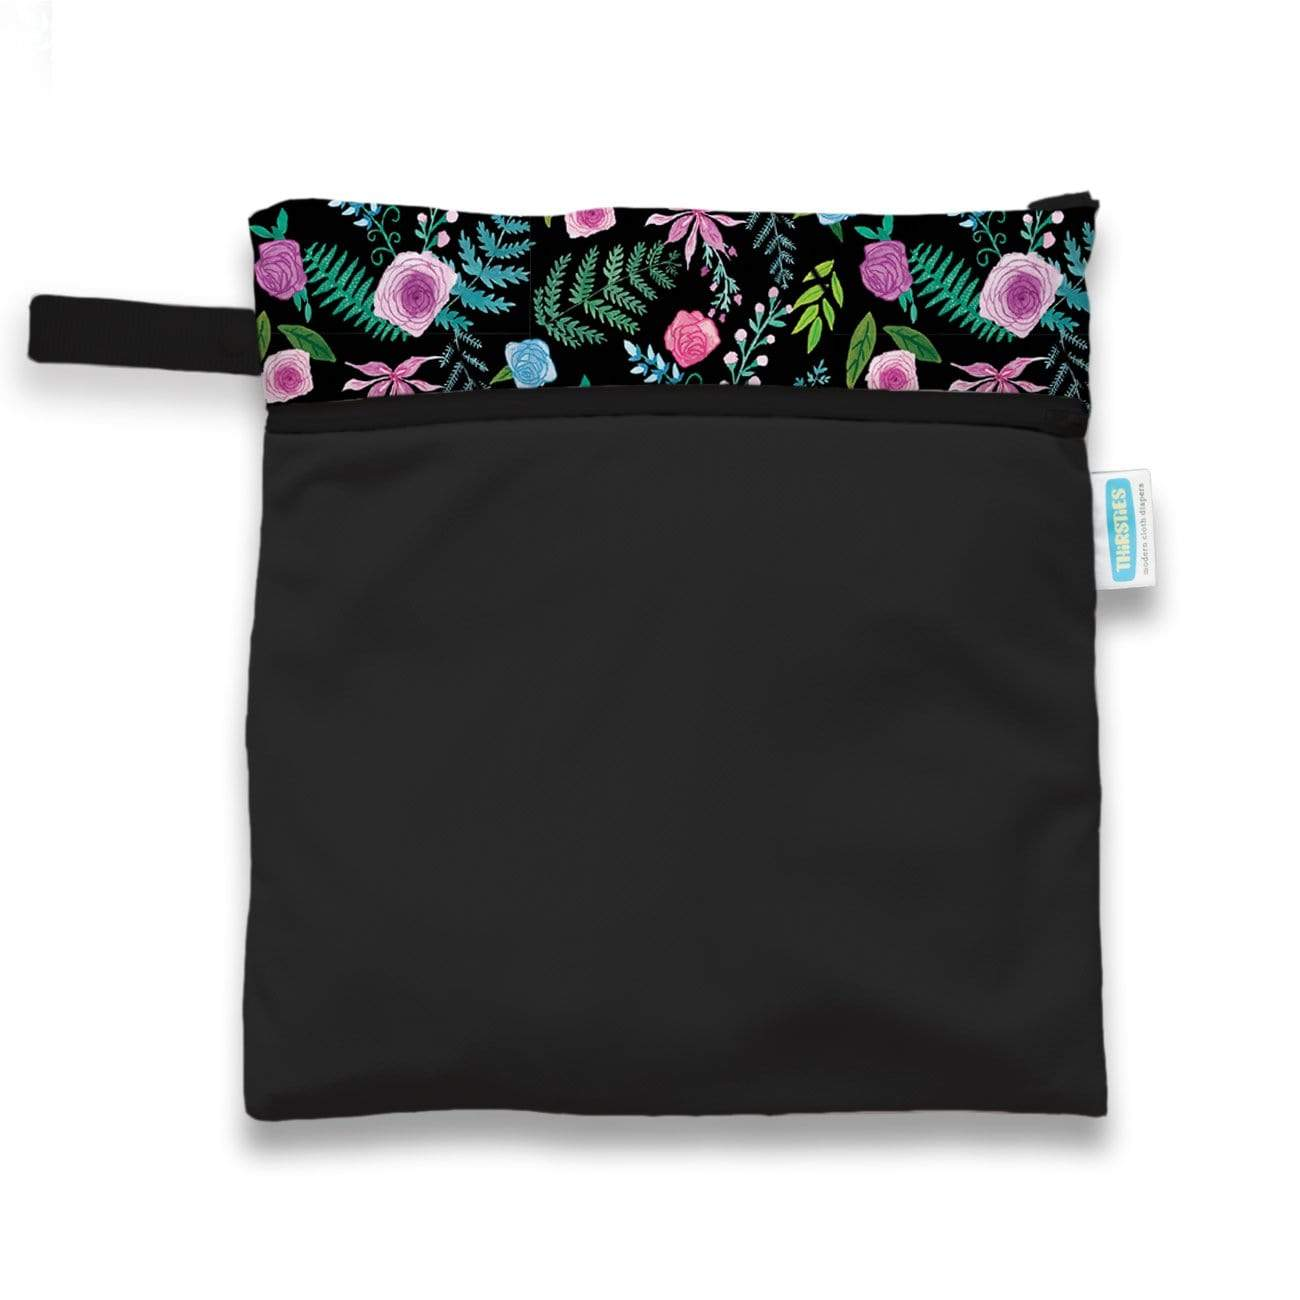 Thirsties Wet/Dry Bag - Floribunda